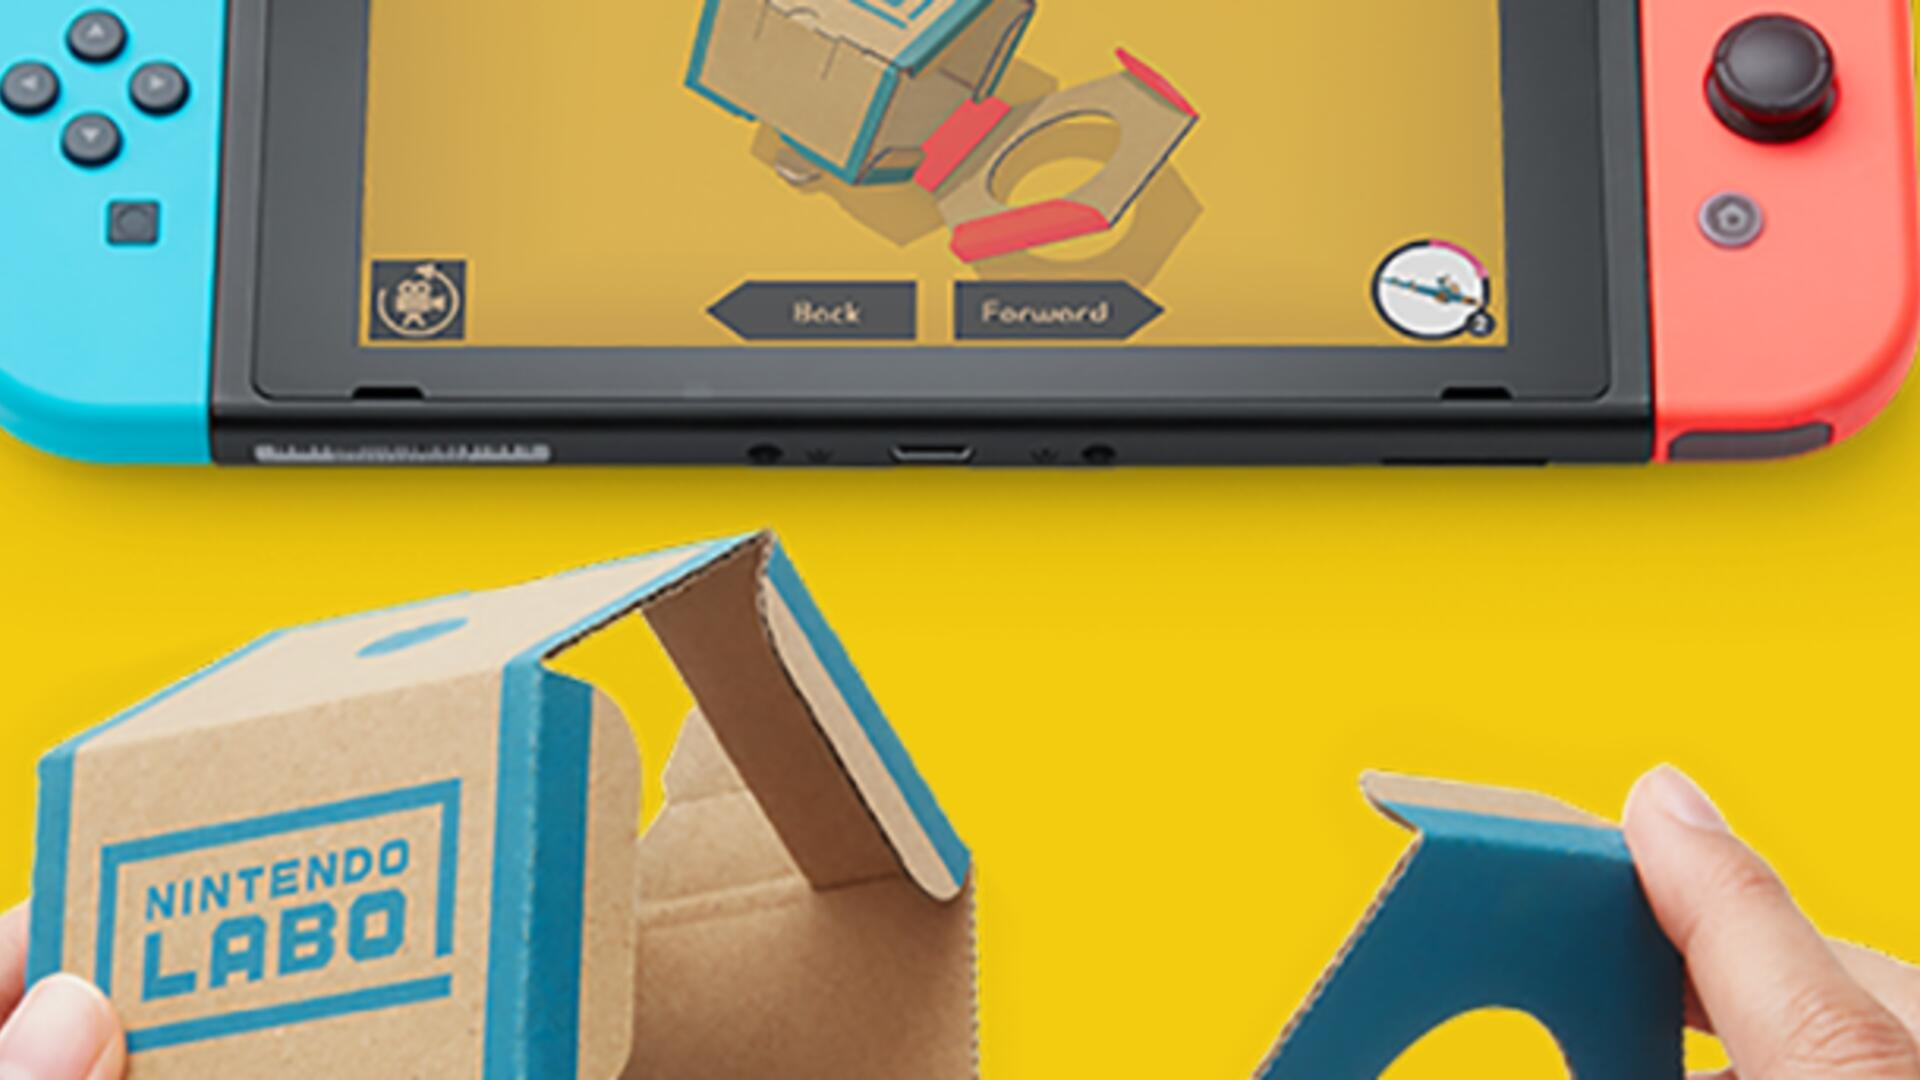 Nintendo Labo Only Sold Through 30 Percent of Its Initial Shipment in Japan